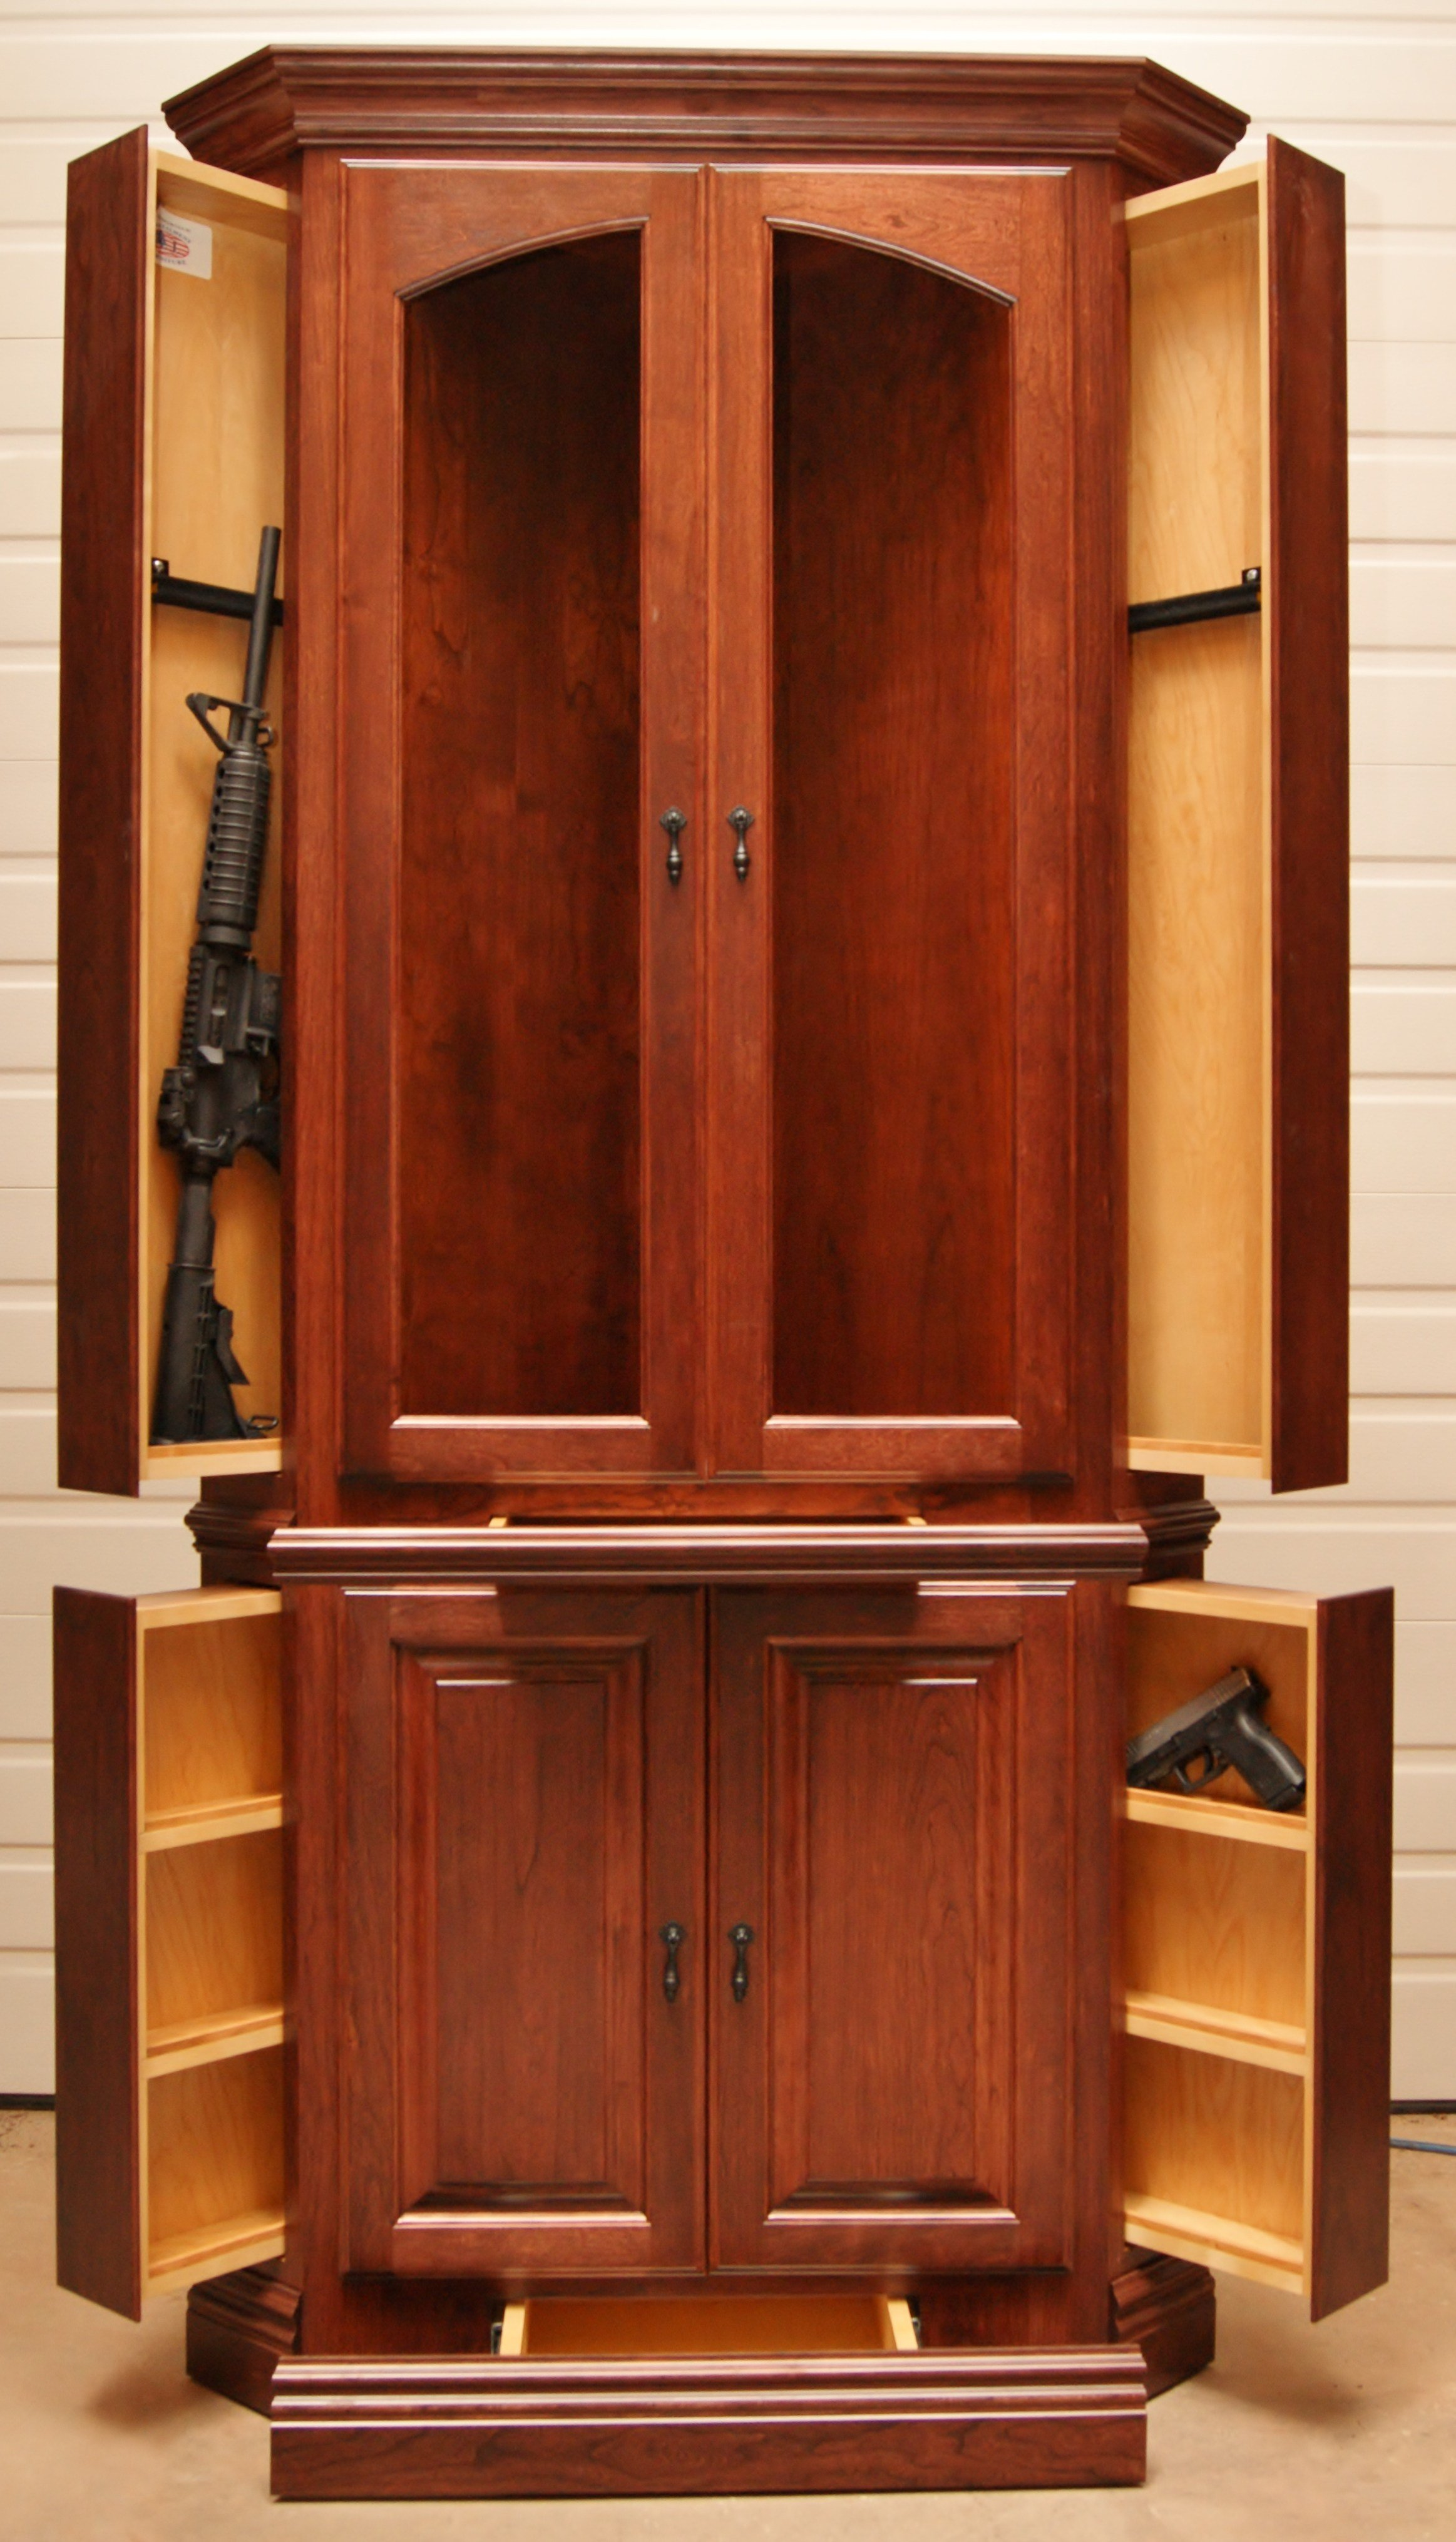 Best The Gun Box Unturned Bedroom Safe Safes Youll Love Wayfair With Pictures